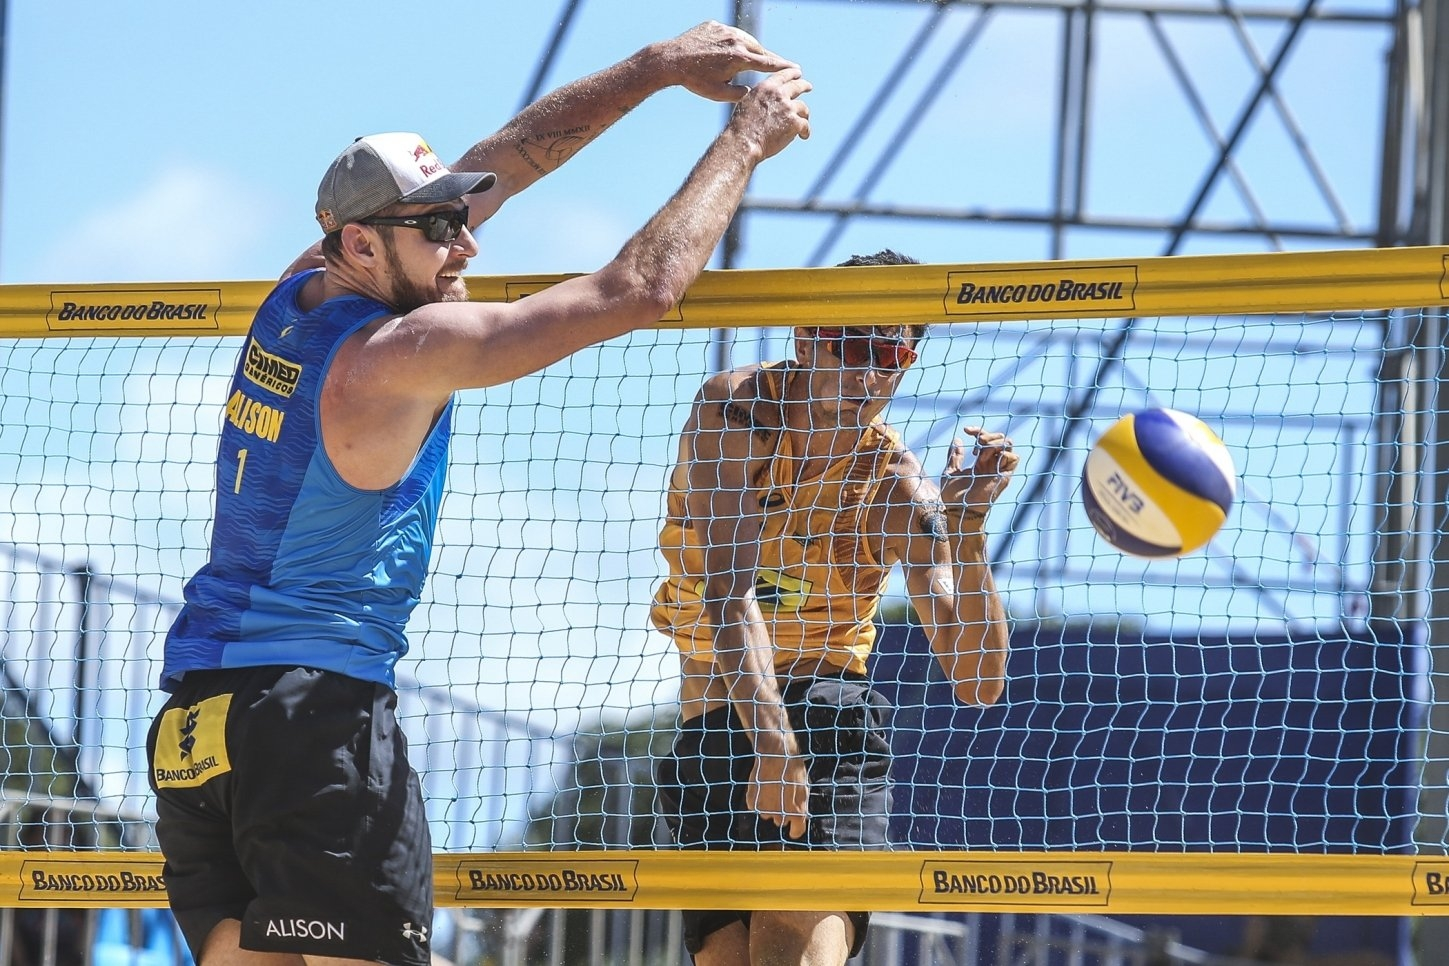 Alison and Andre were opponents in the final of the Brazilian Super Praia in April (Photocredit: CBV)